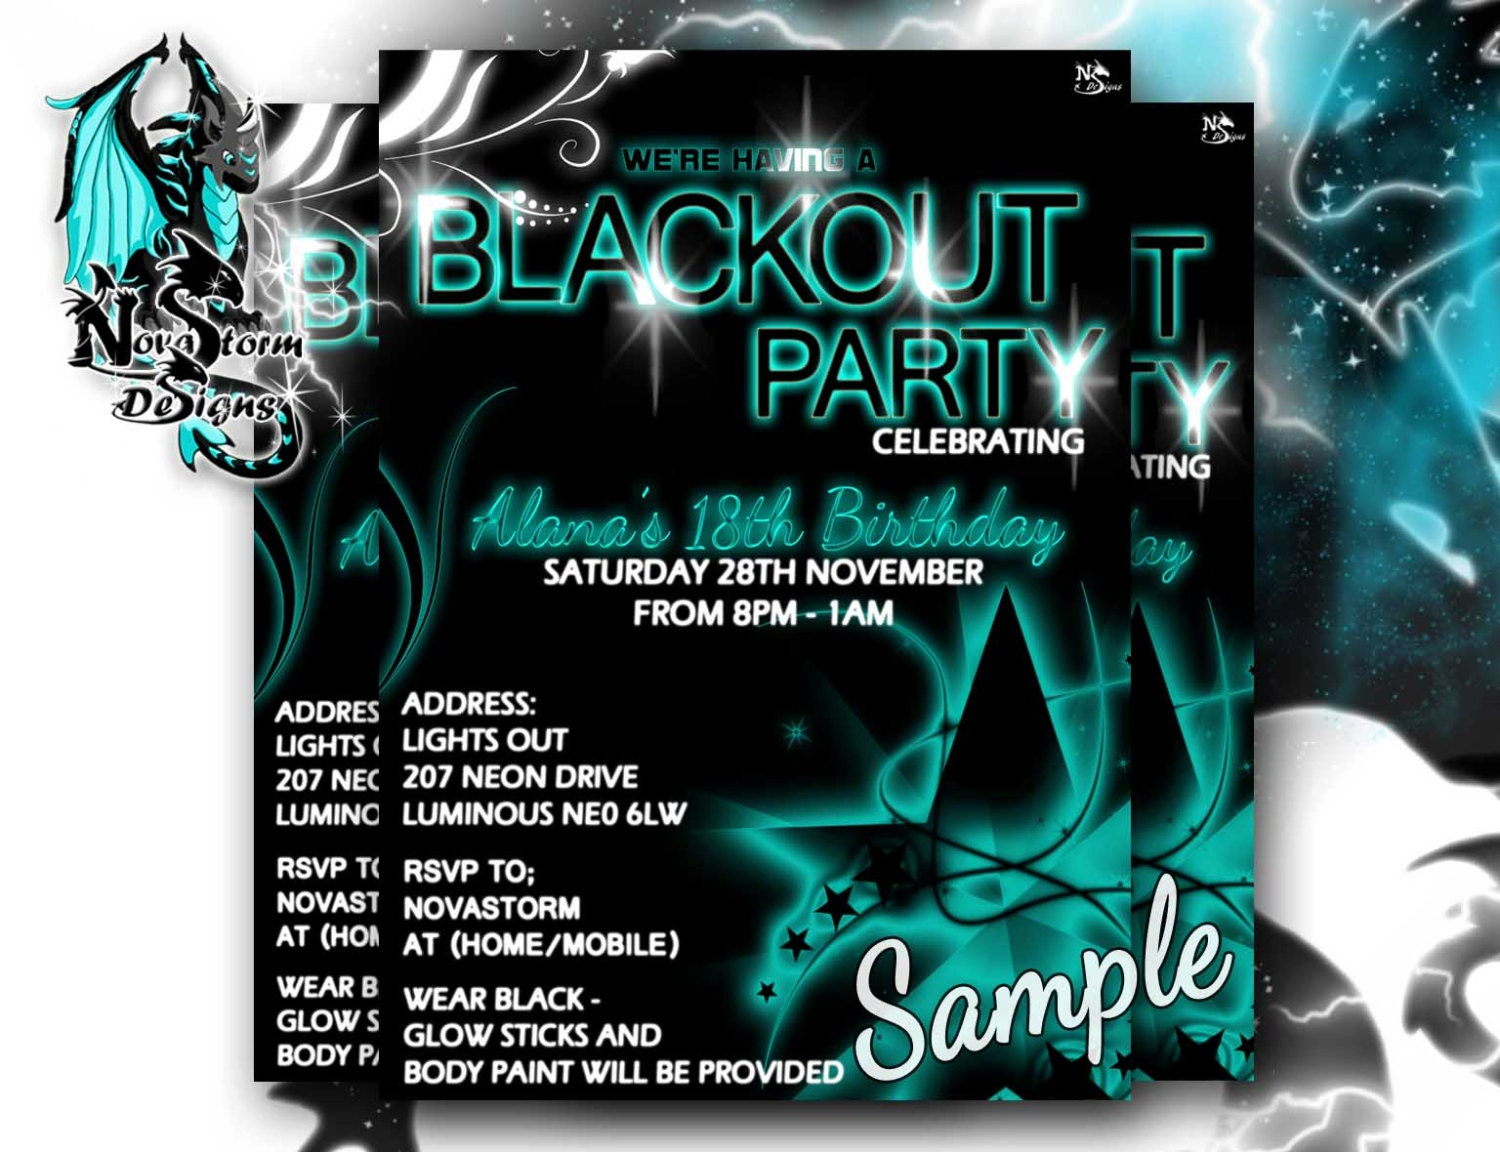 design my own party invitations for free uk - Picture Ideas References